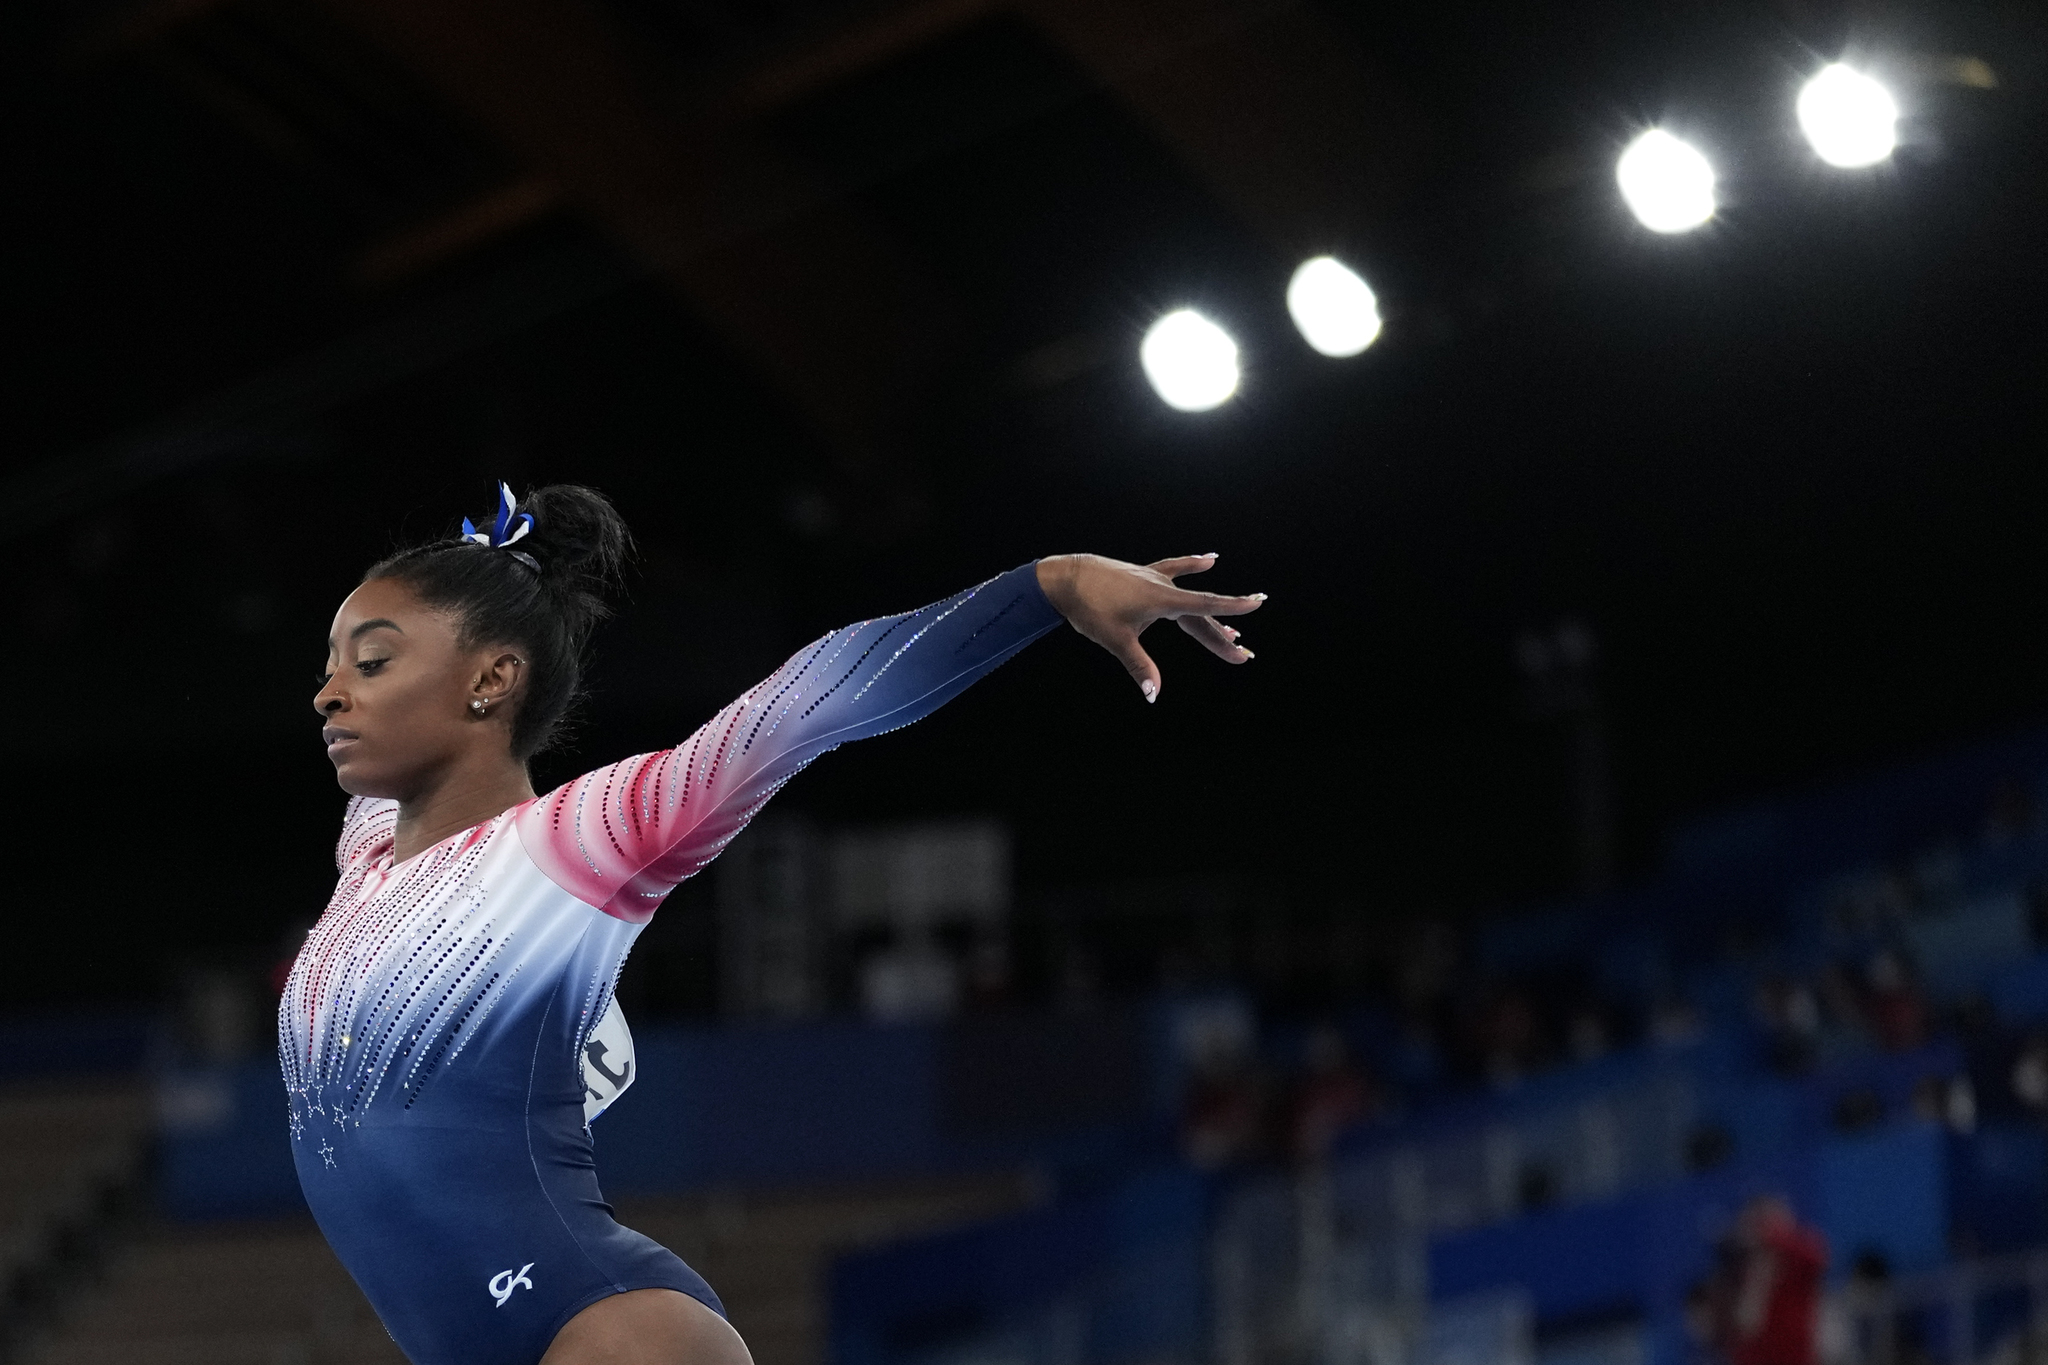 Simone lt;HIT gt;Biles lt;/HIT gt;, of the United States, performs on the balance beam during the artistic gymnastics women's apparatus final at the 2020 Summer Olympics, Tuesday, Aug. 3, 2021, in Tokyo, Japan. (AP Photo/Ashley Landis)